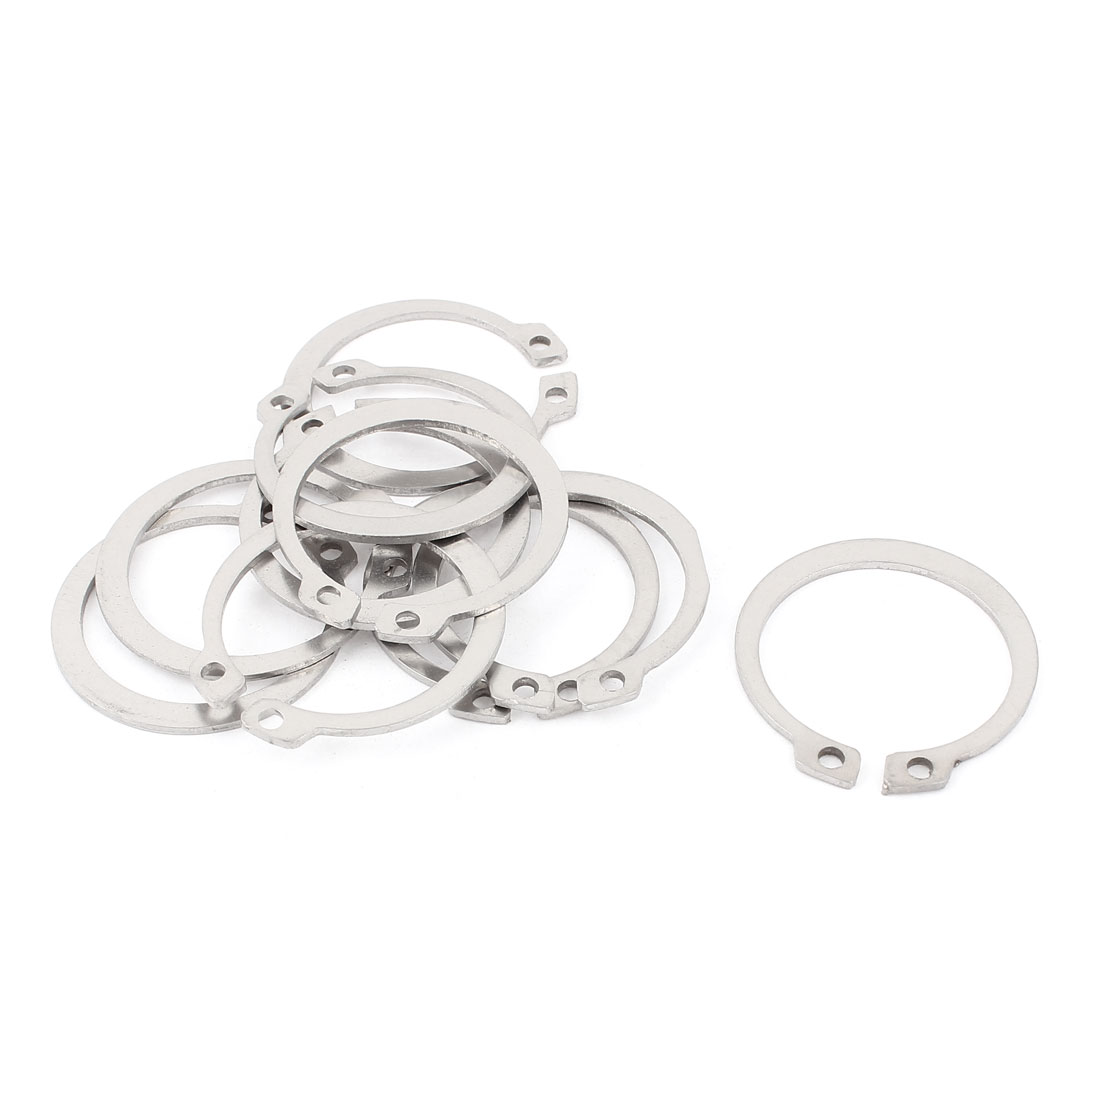 10pcs 304 Stainless Steel External Circlip Retaining Shaft Snap Rings 36mm